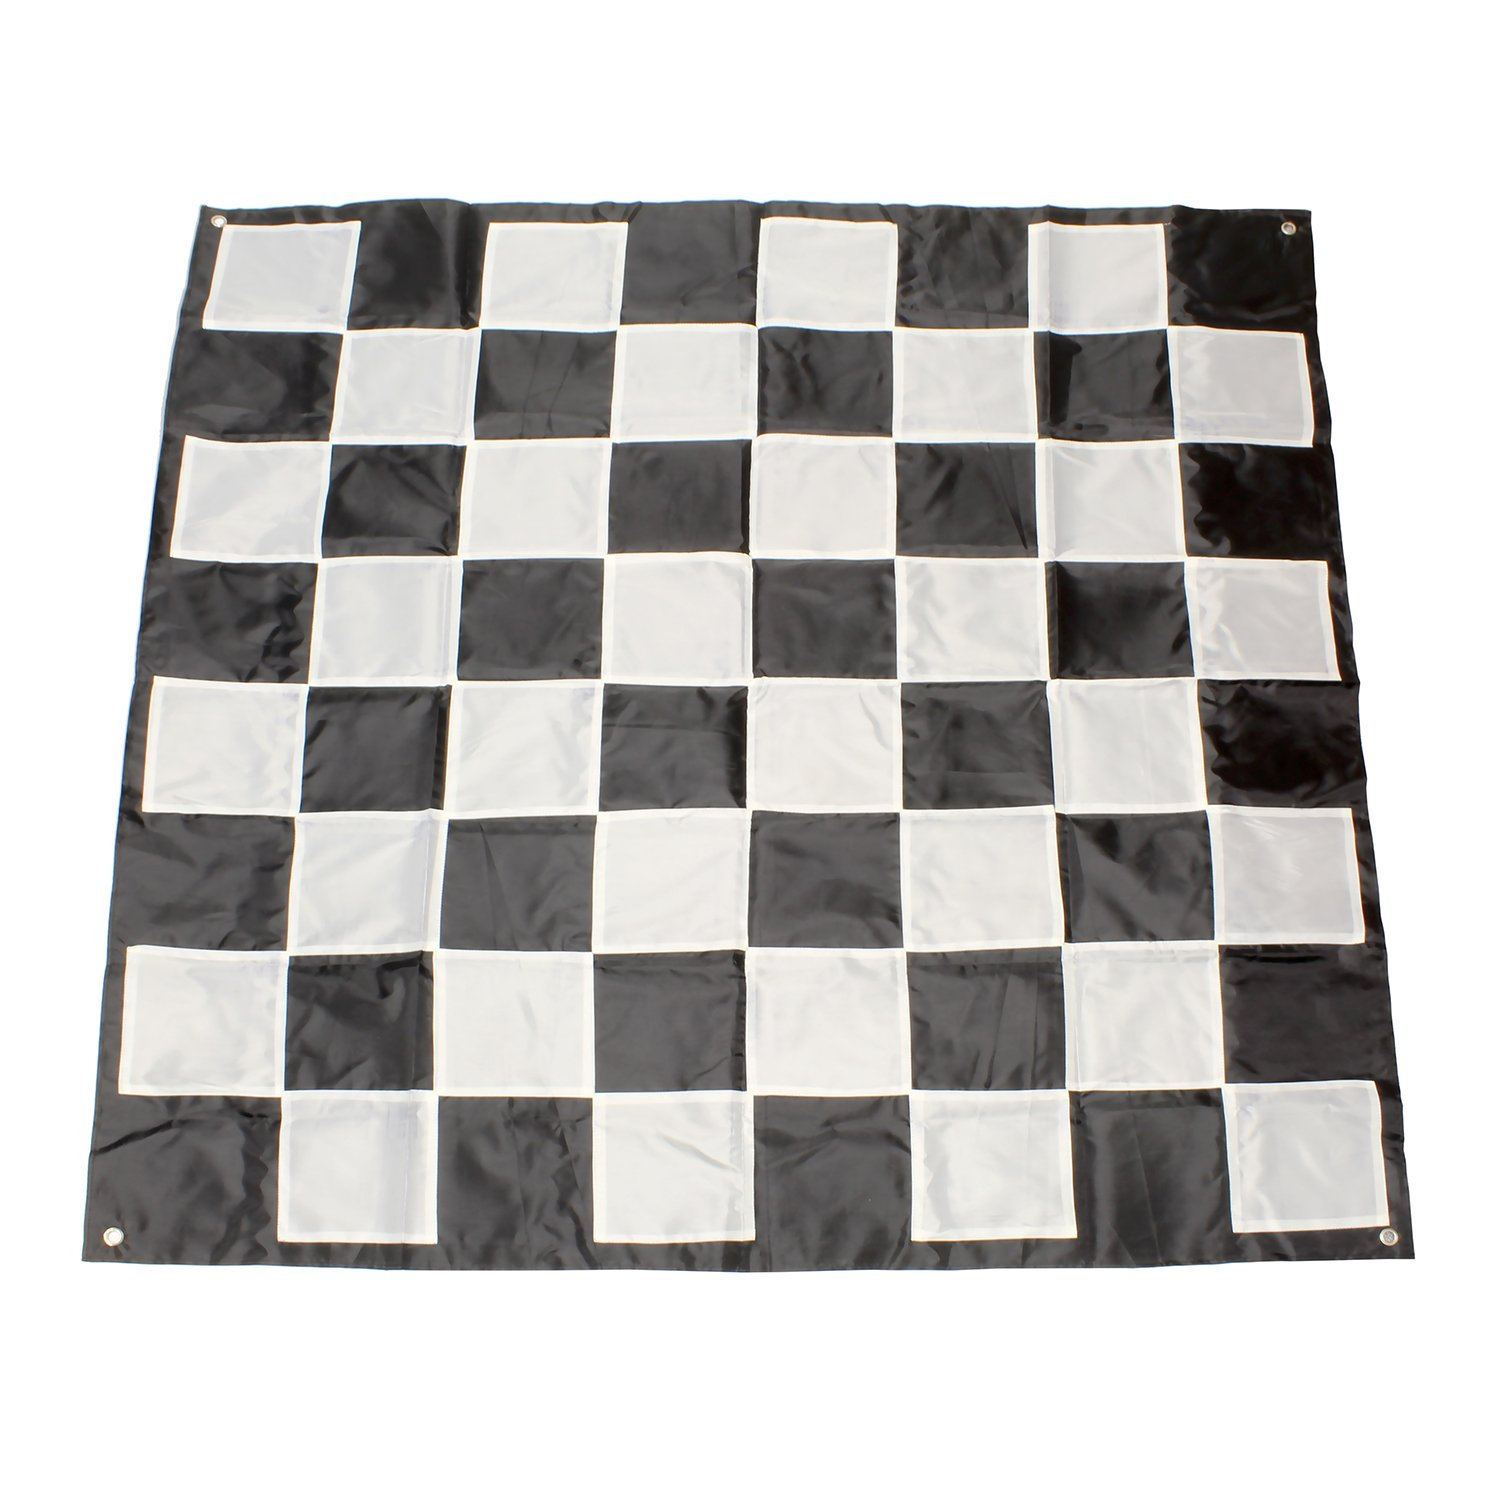 Get Out! | Giant Checkers Board Outdoor Games for Family – 9x9' Ft Plastic Checkers Rug, Big Checker Board Checkers Mat